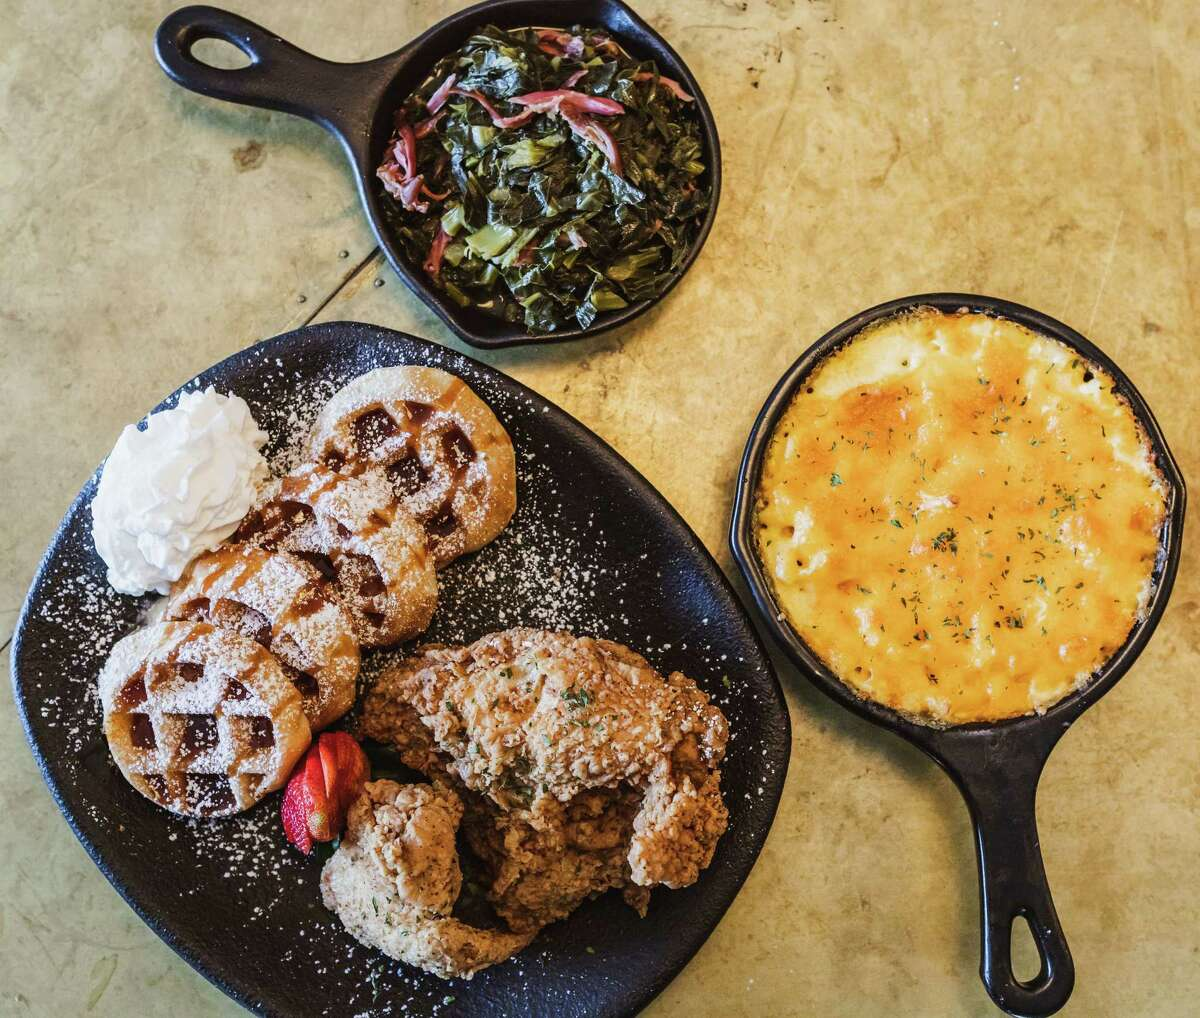 Taste Bar + Kitchen, a new restaurant offering globally inspired comfort food and craft cocktails is set to open in March 2019 in Midtown at 3015 Bagby.